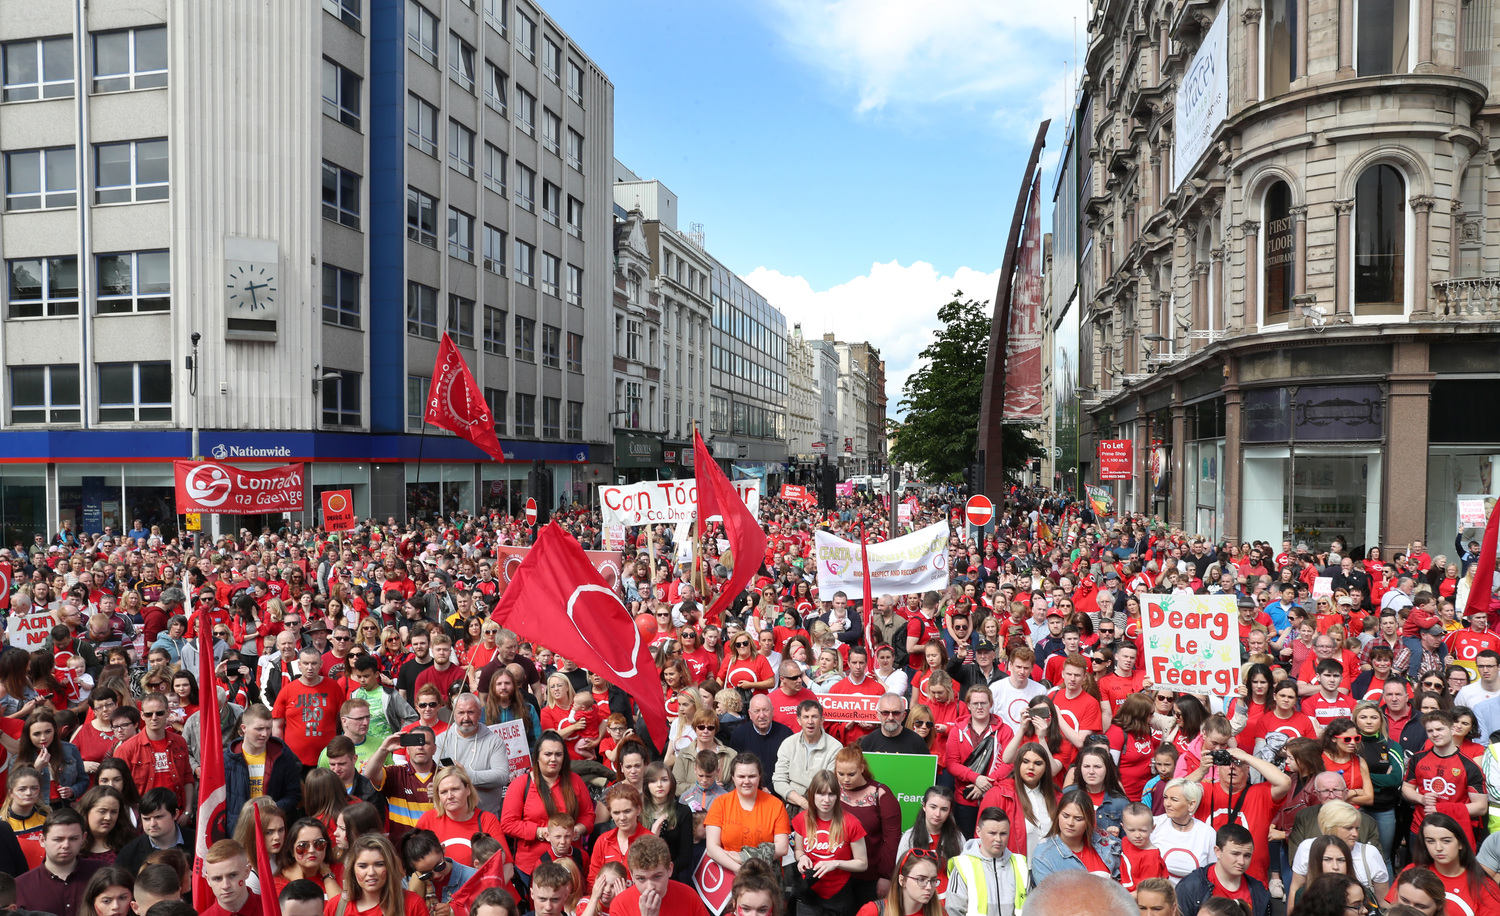 Thousands attended a rally in Belfast in May 2017 demanding an Irish language act.